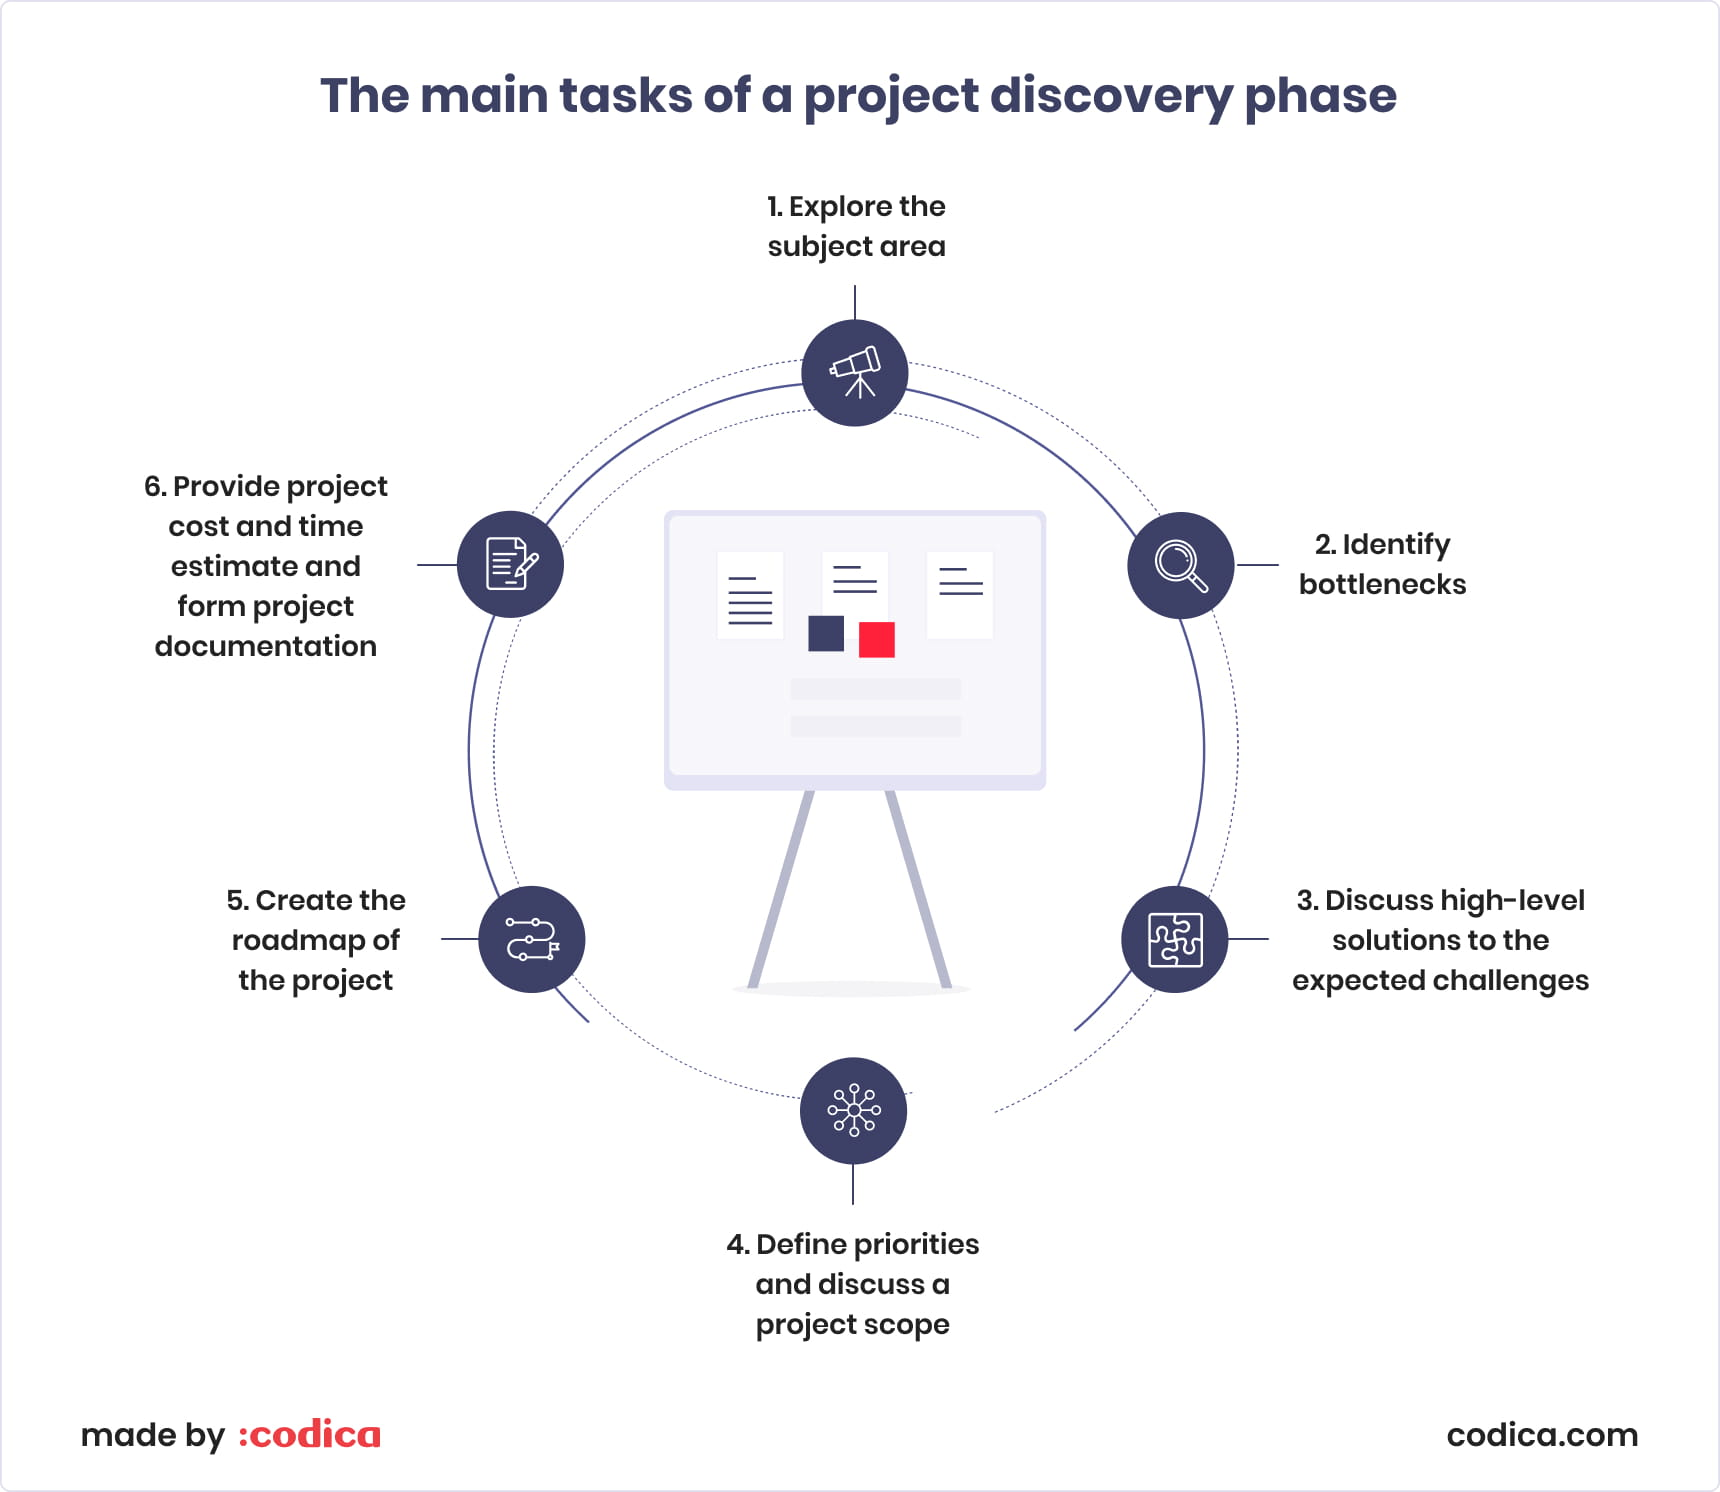 The main tasks of a project discovery phase